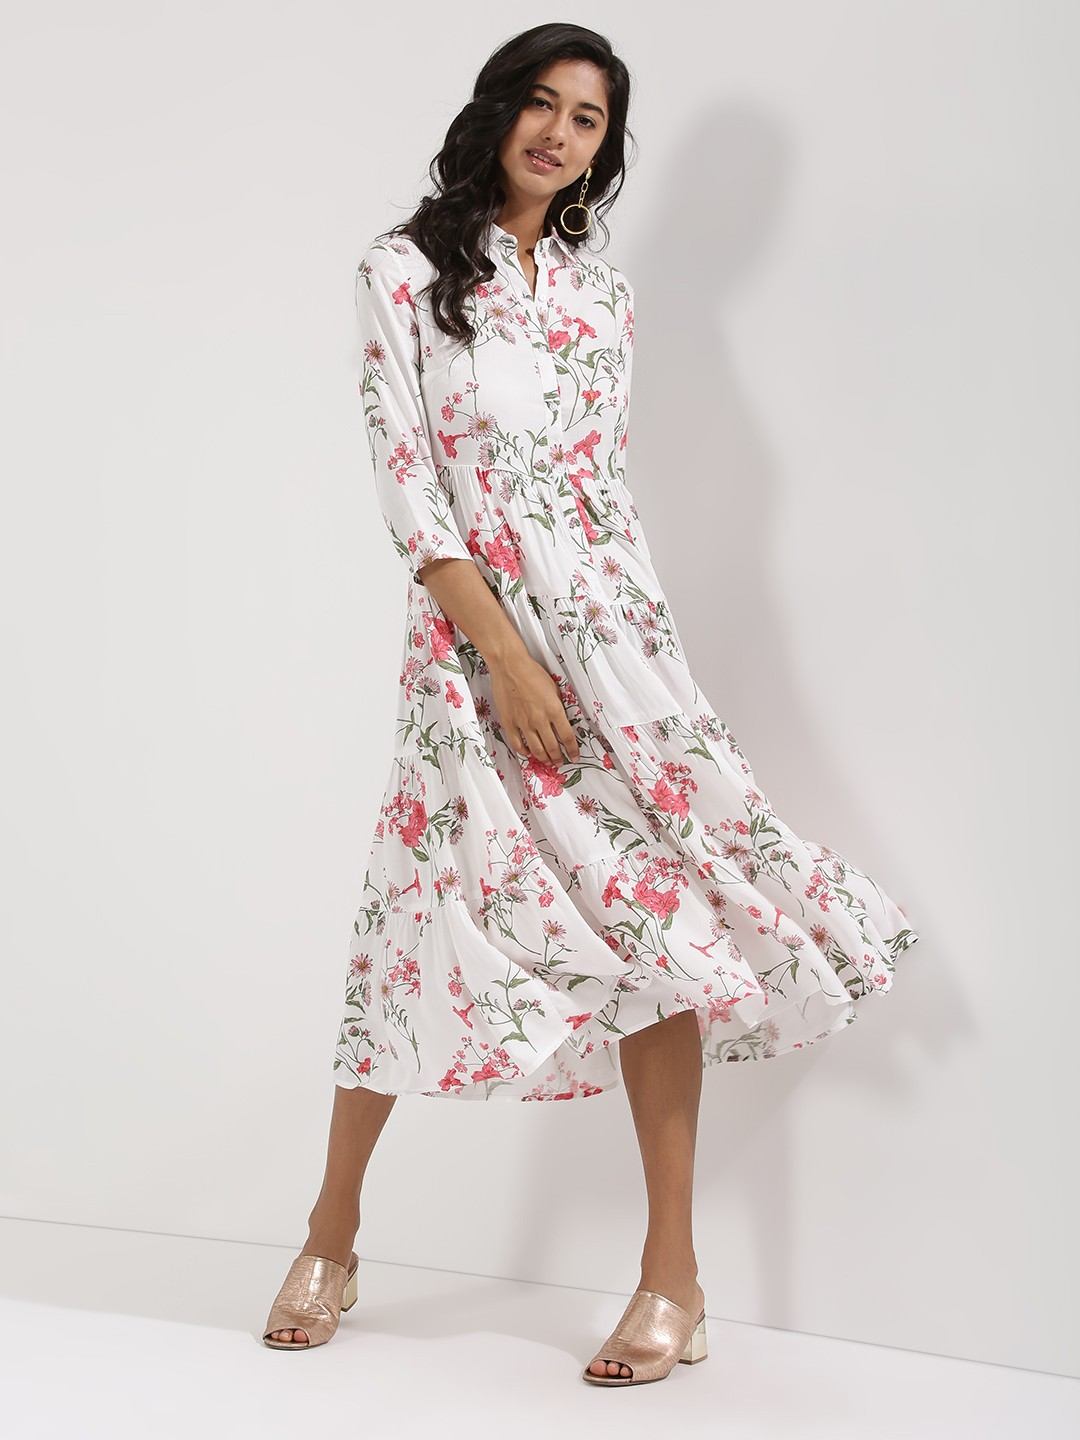 Buy femella printed tier shirt dress for women women 39 s for Buy white dress shirt